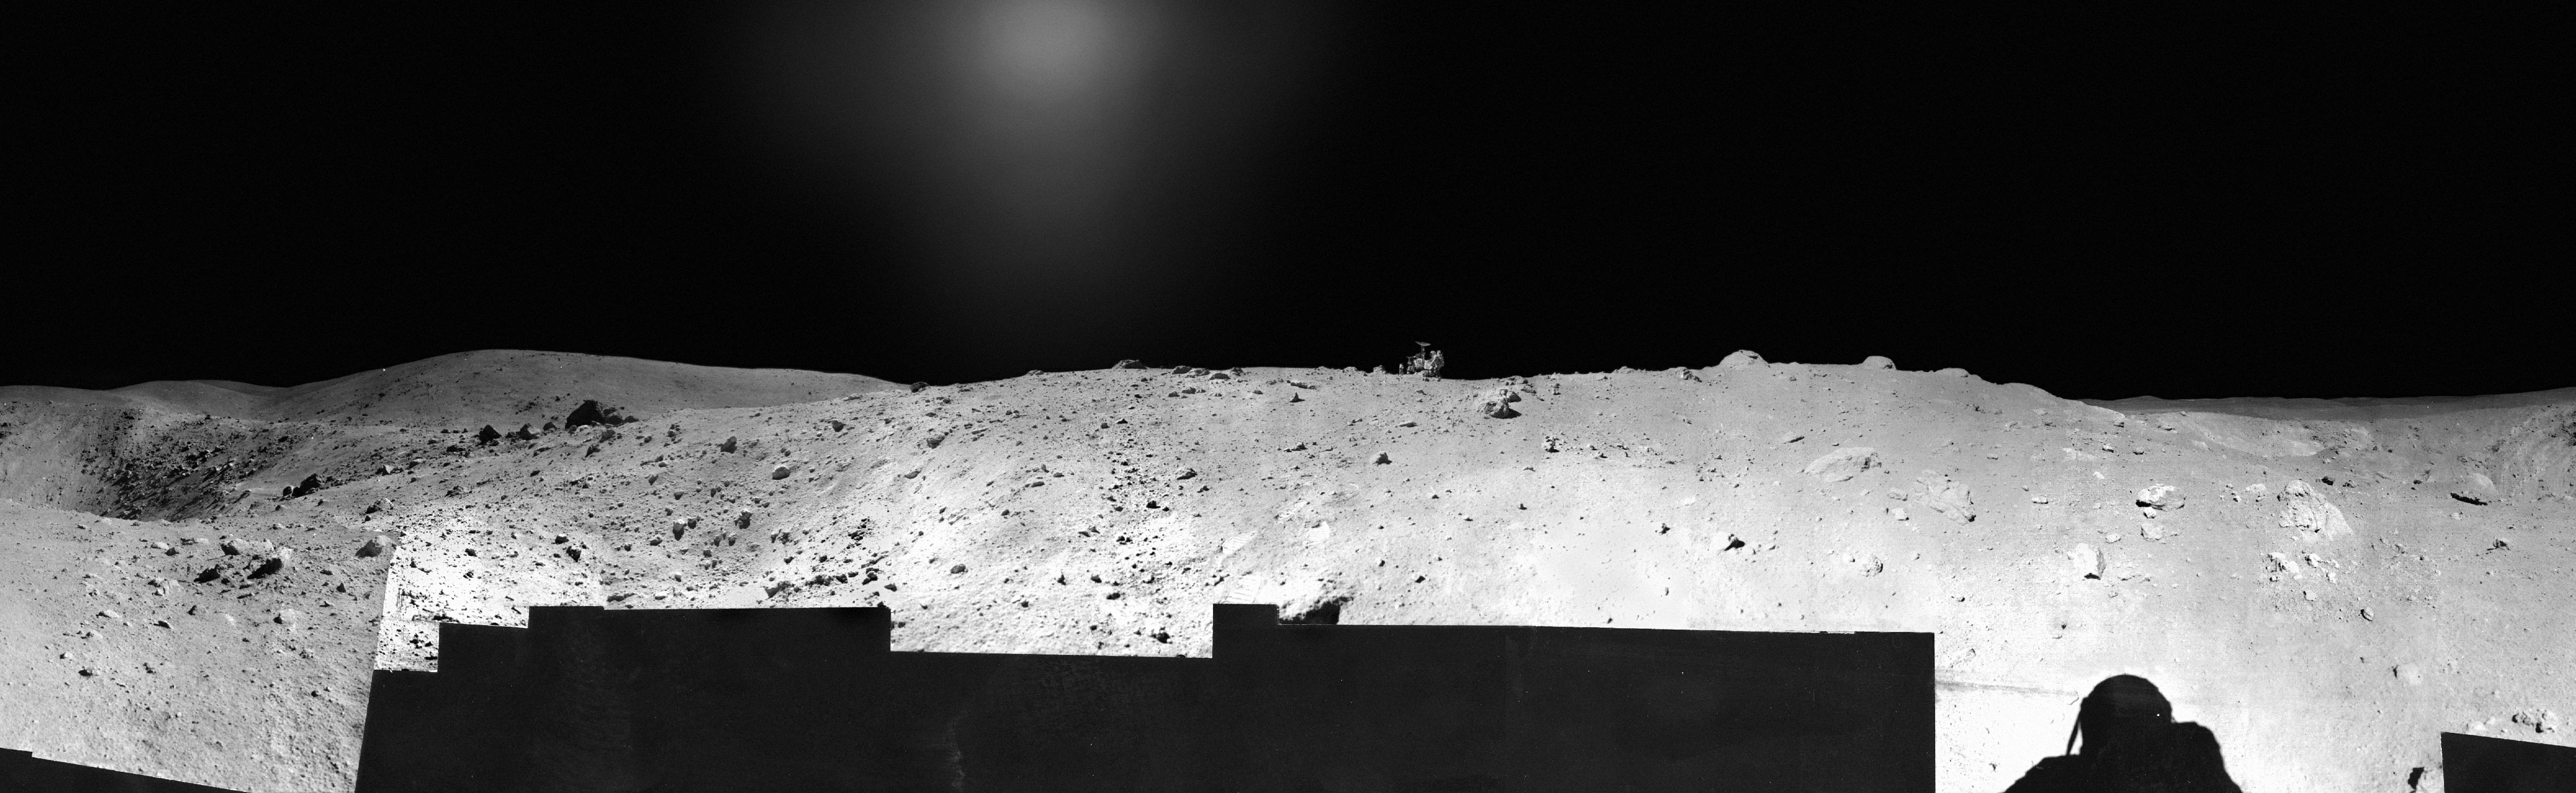 Apollo 16 Panorama - Station 11 | USGS Astrogeology ...